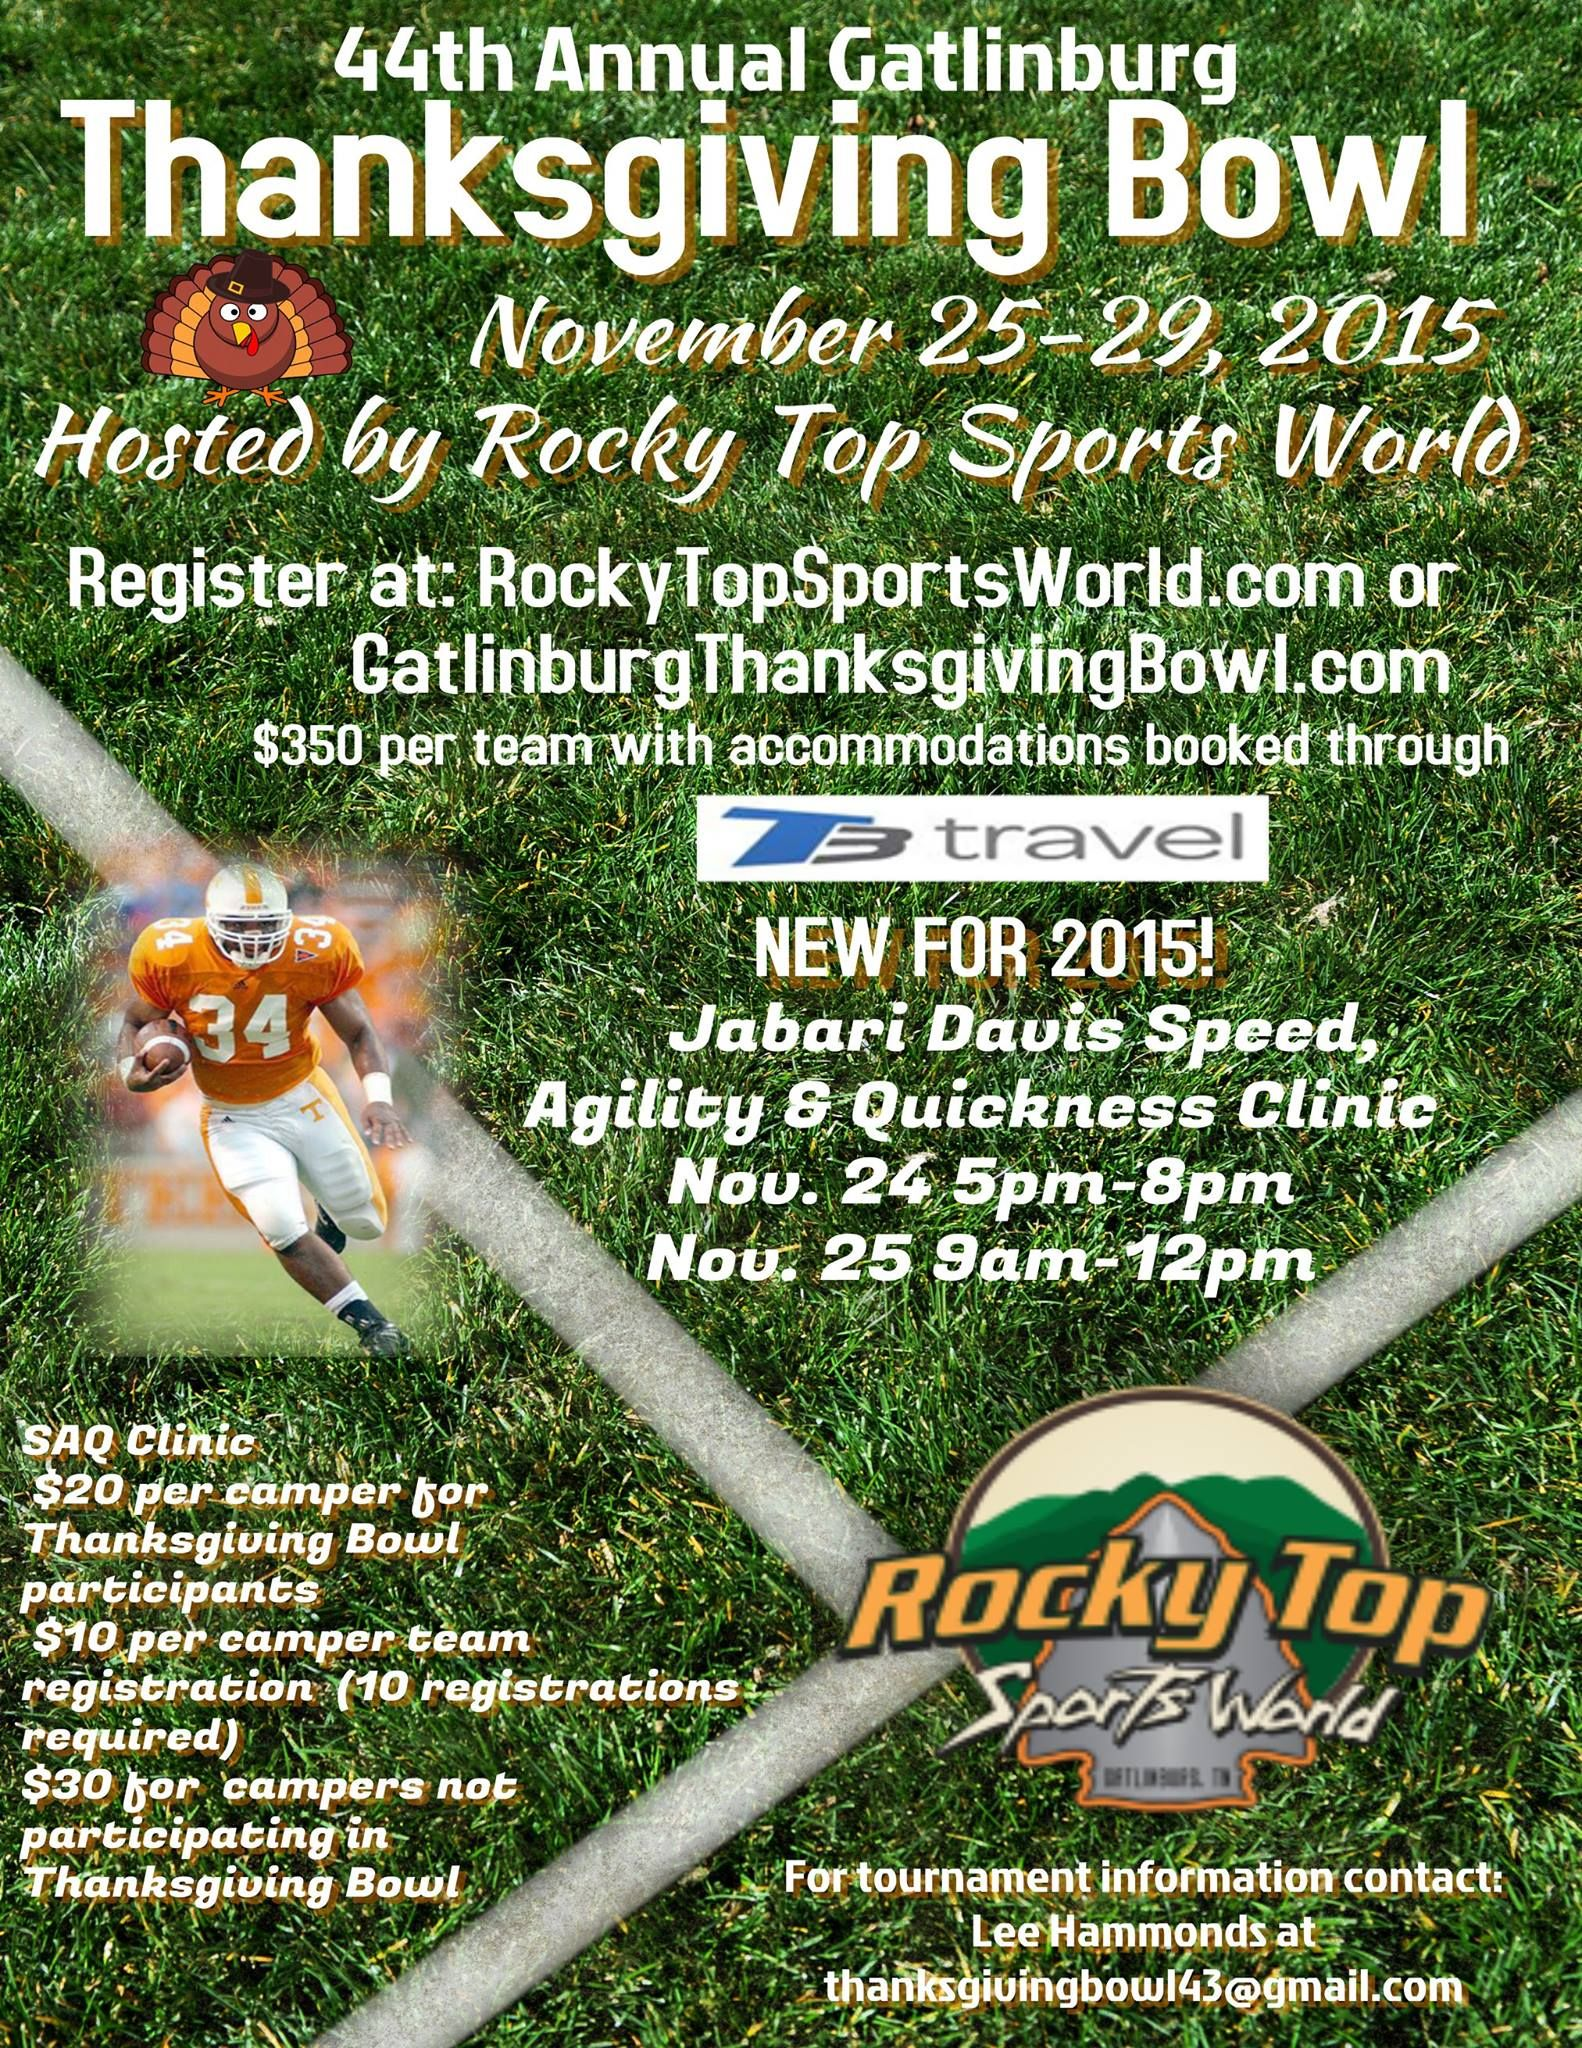 It's Football Time in Tennessee! Register for the